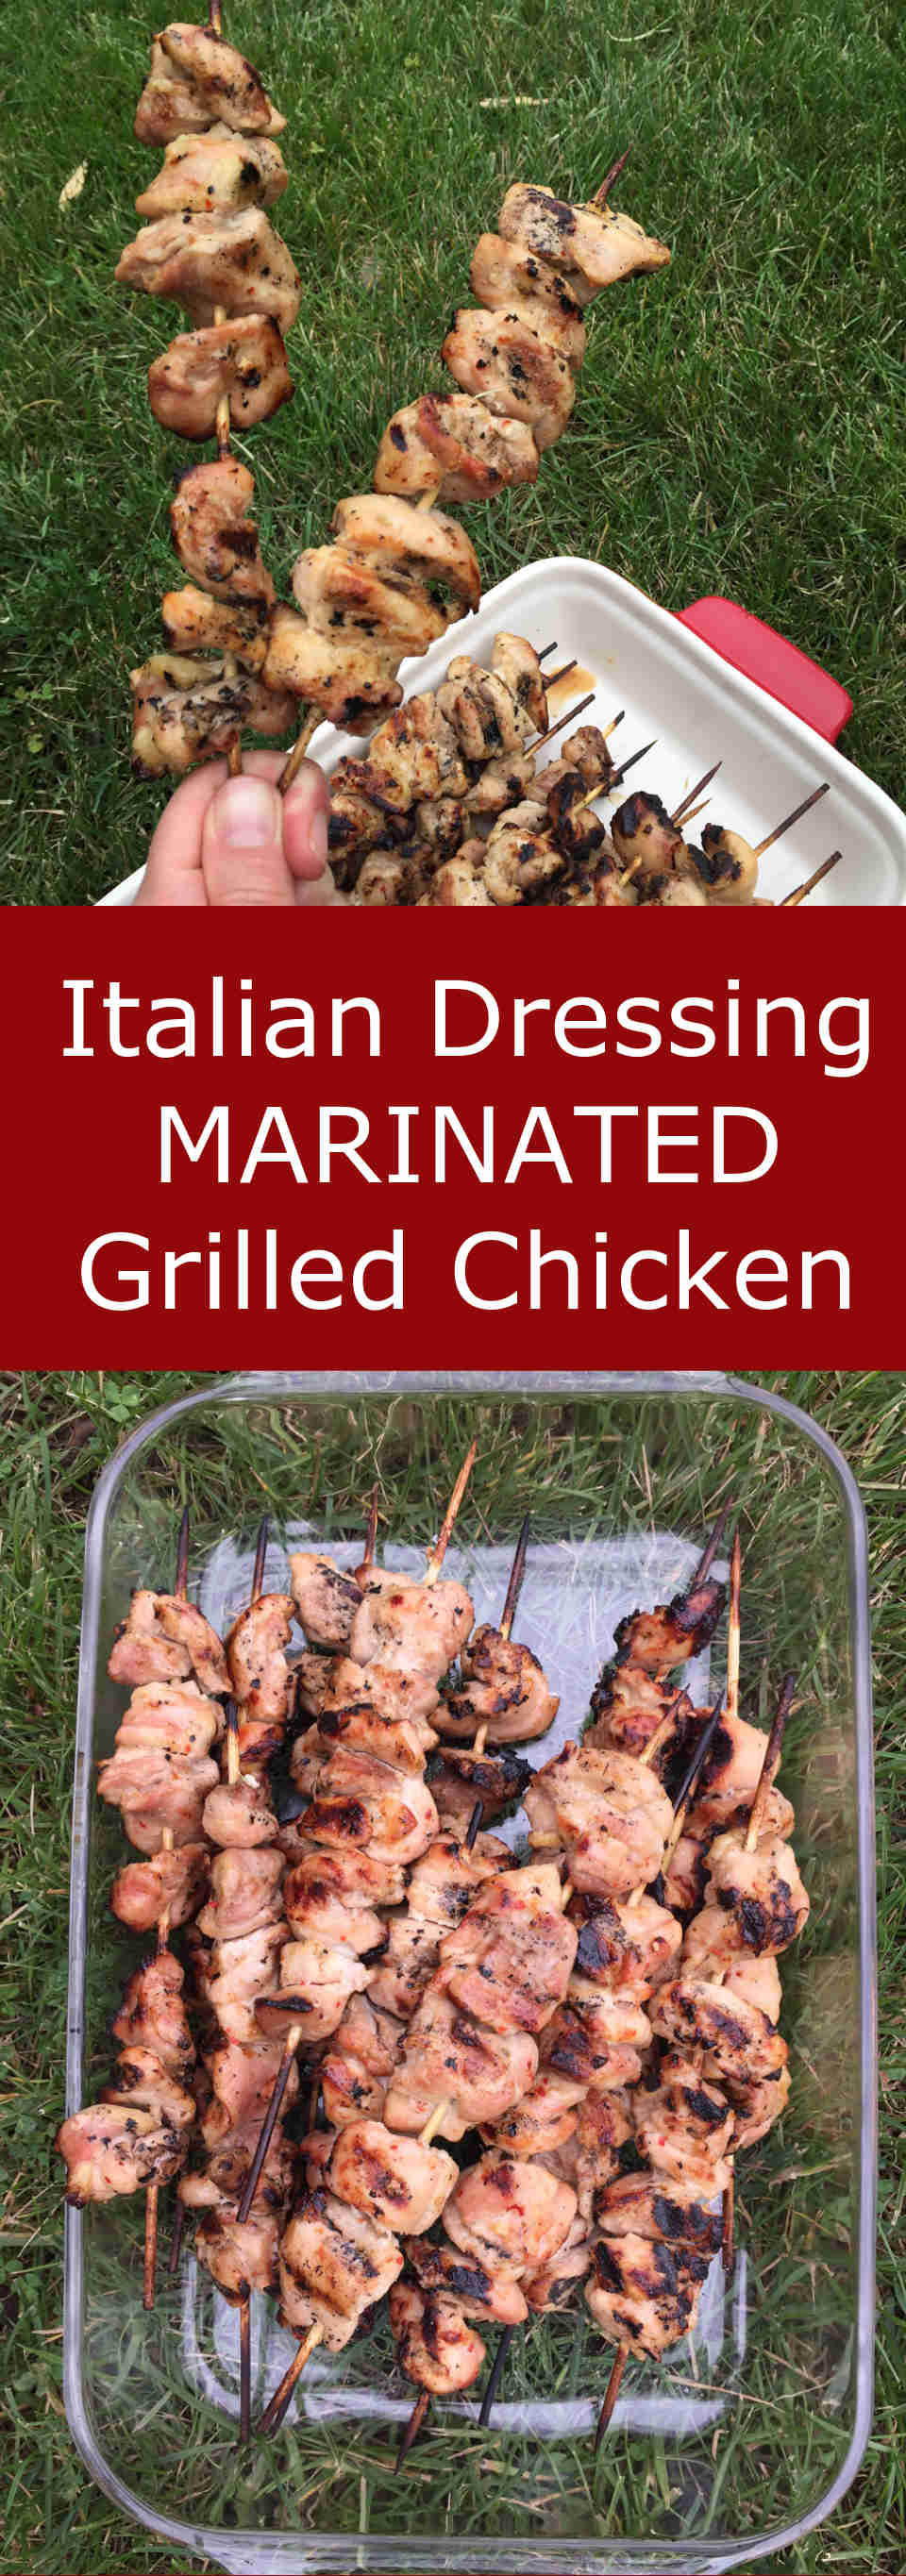 Grilled Chicken Marinated In Italian Dressing - so simple and so delicious! This is so easy, MUST MAKE!| MelanieCooks.com